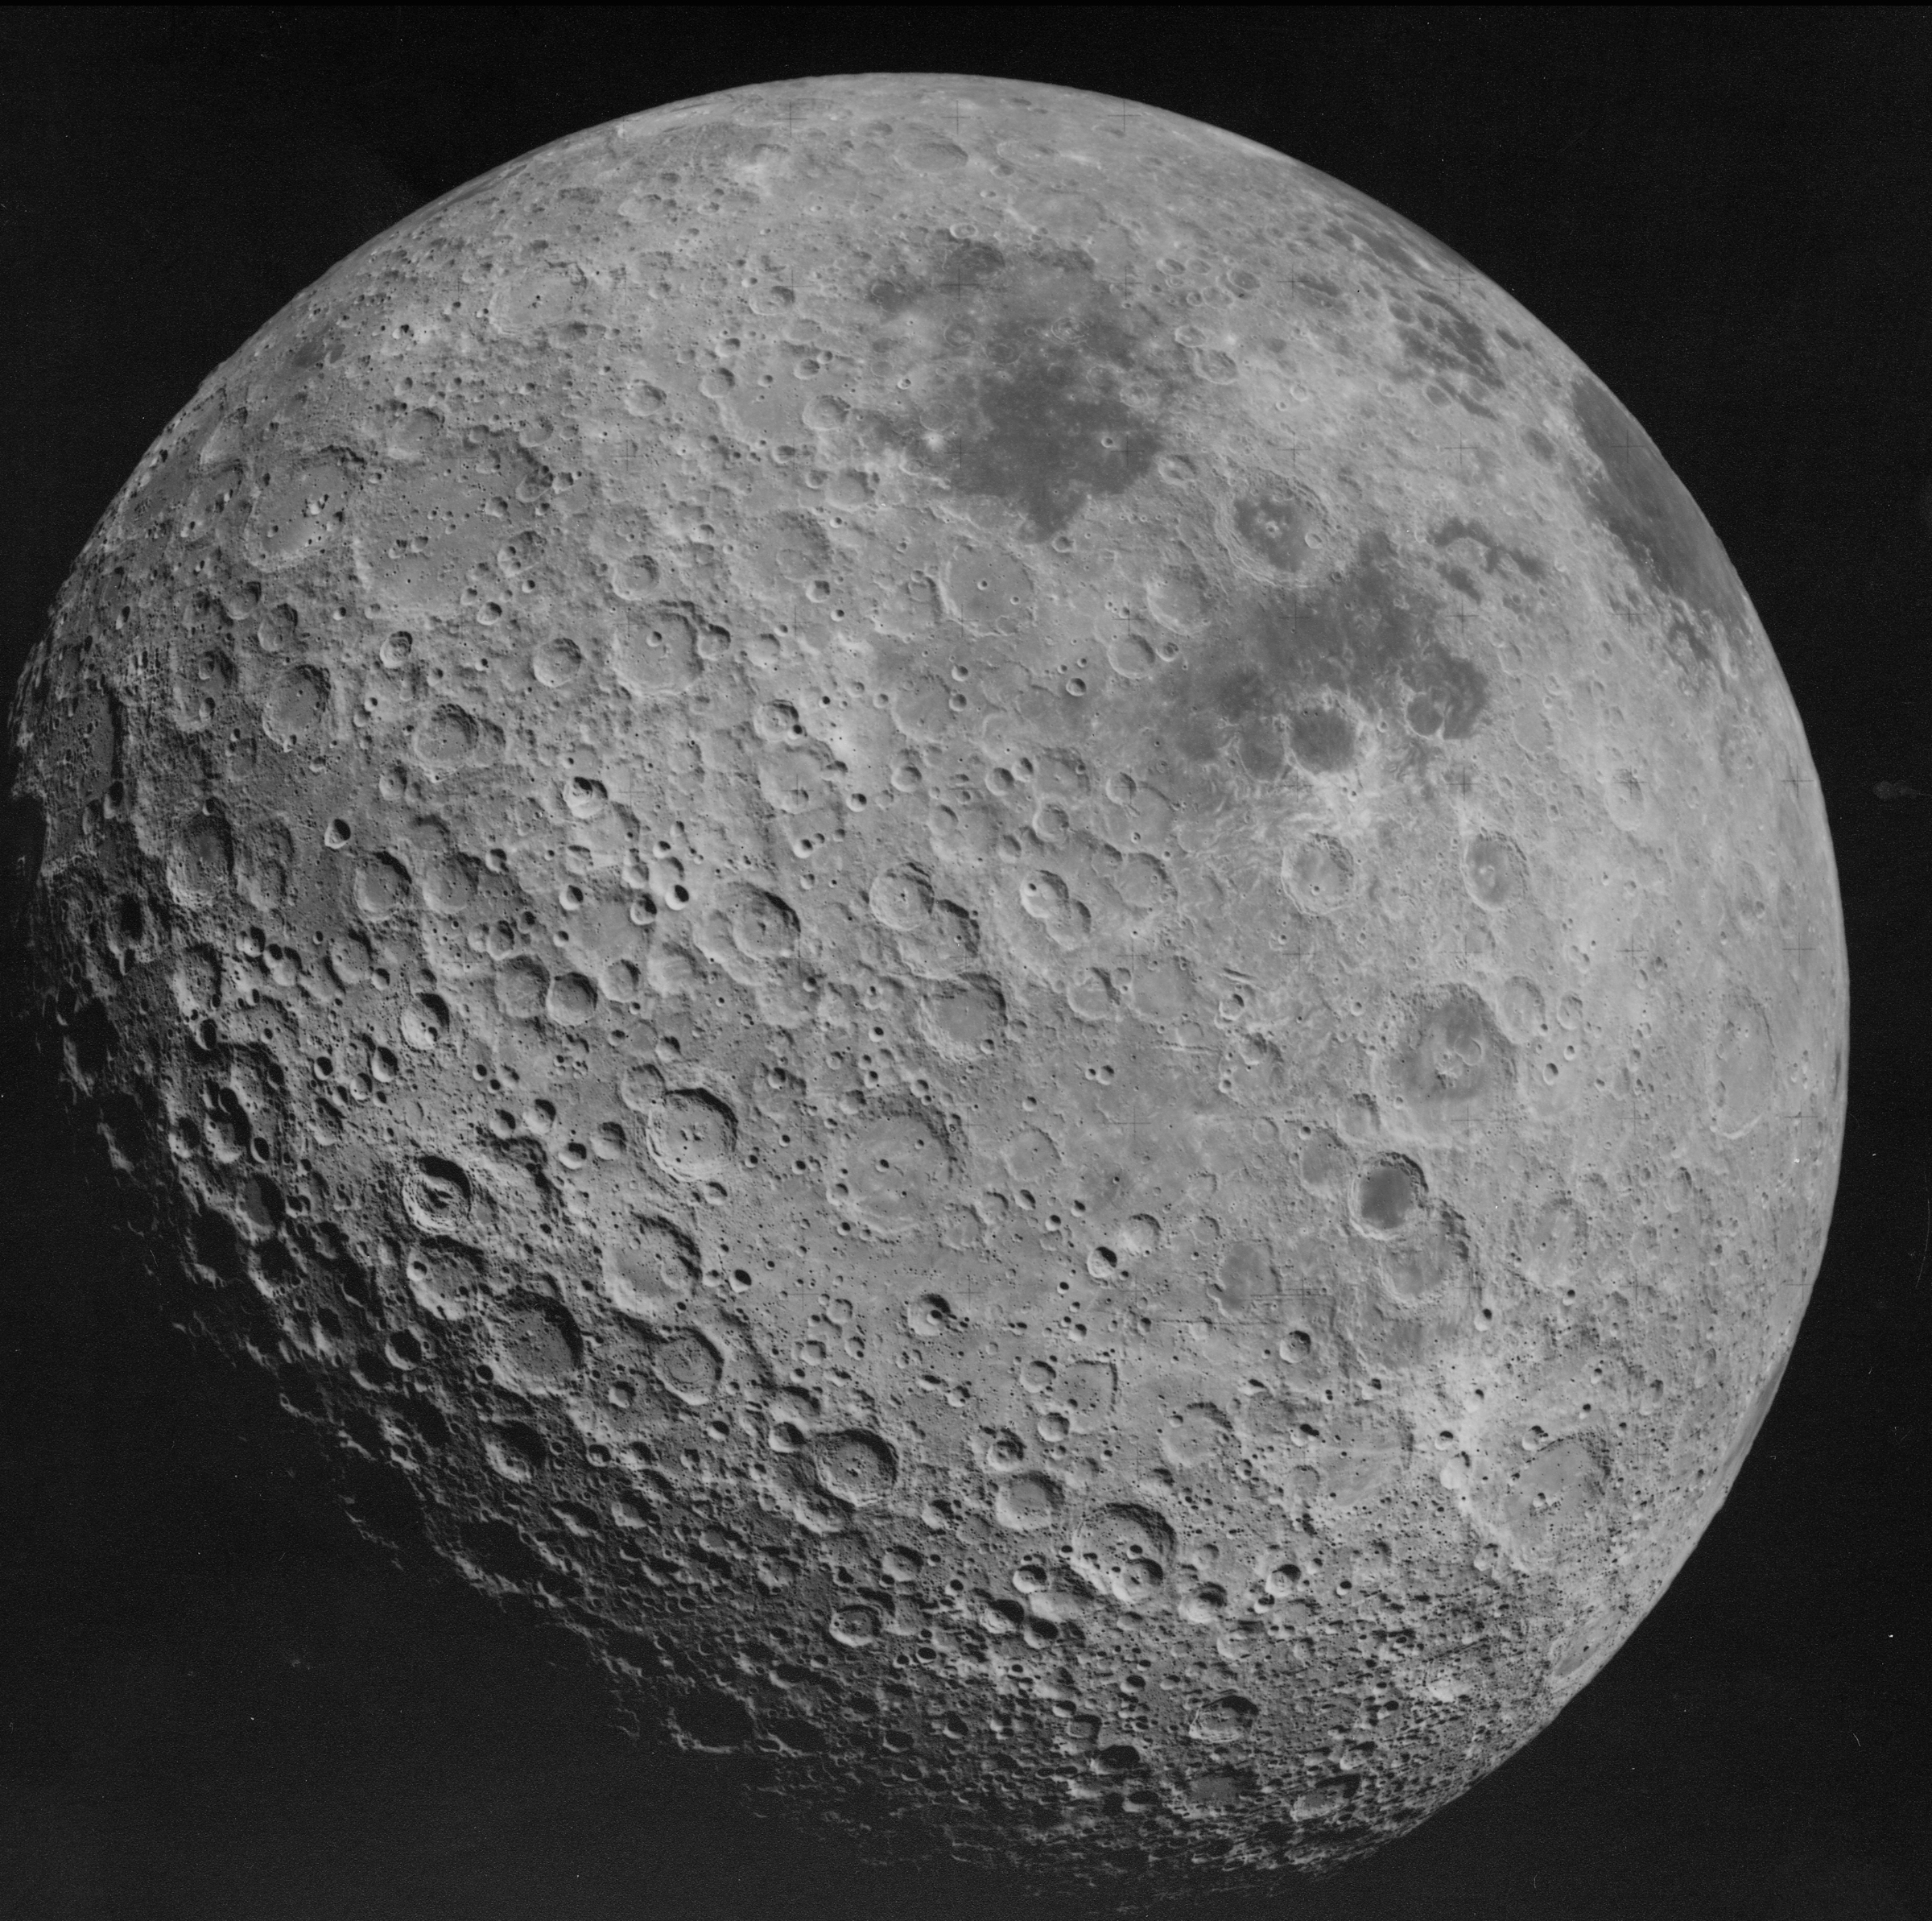 http://upload.wikimedia.org/wikipedia/commons/4/4f/Back_side_of_the_Moon_AS16-3021.jpg